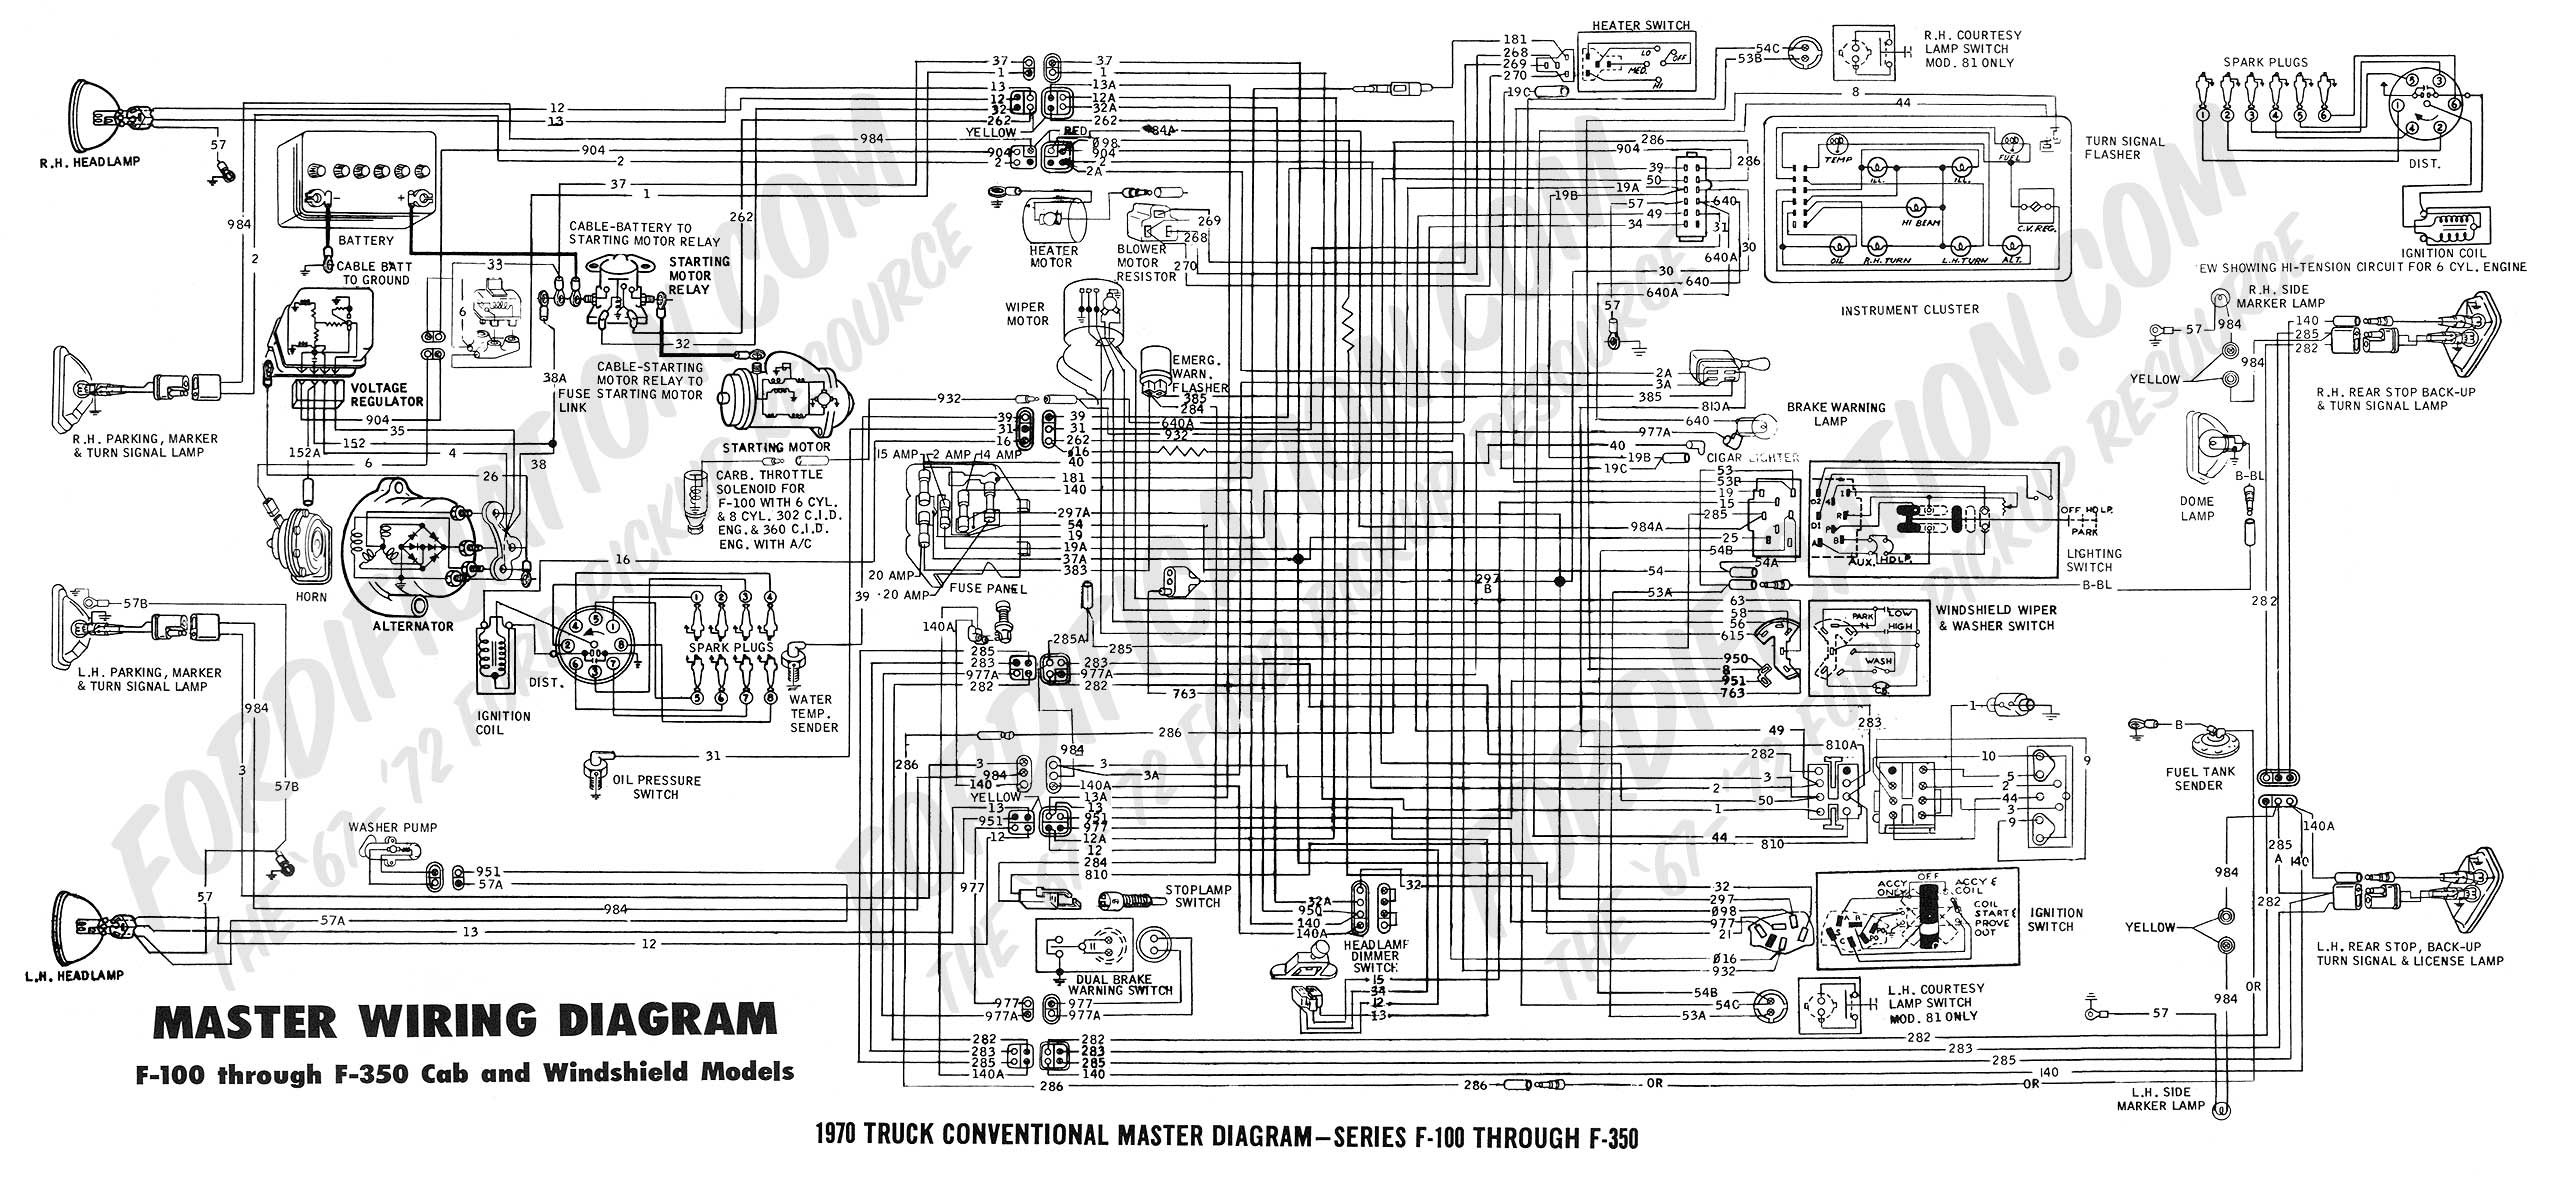 2000 Ford F 250 Voltage Regulator Wiring Diagram Wiring Diagram View A View A Zaafran It